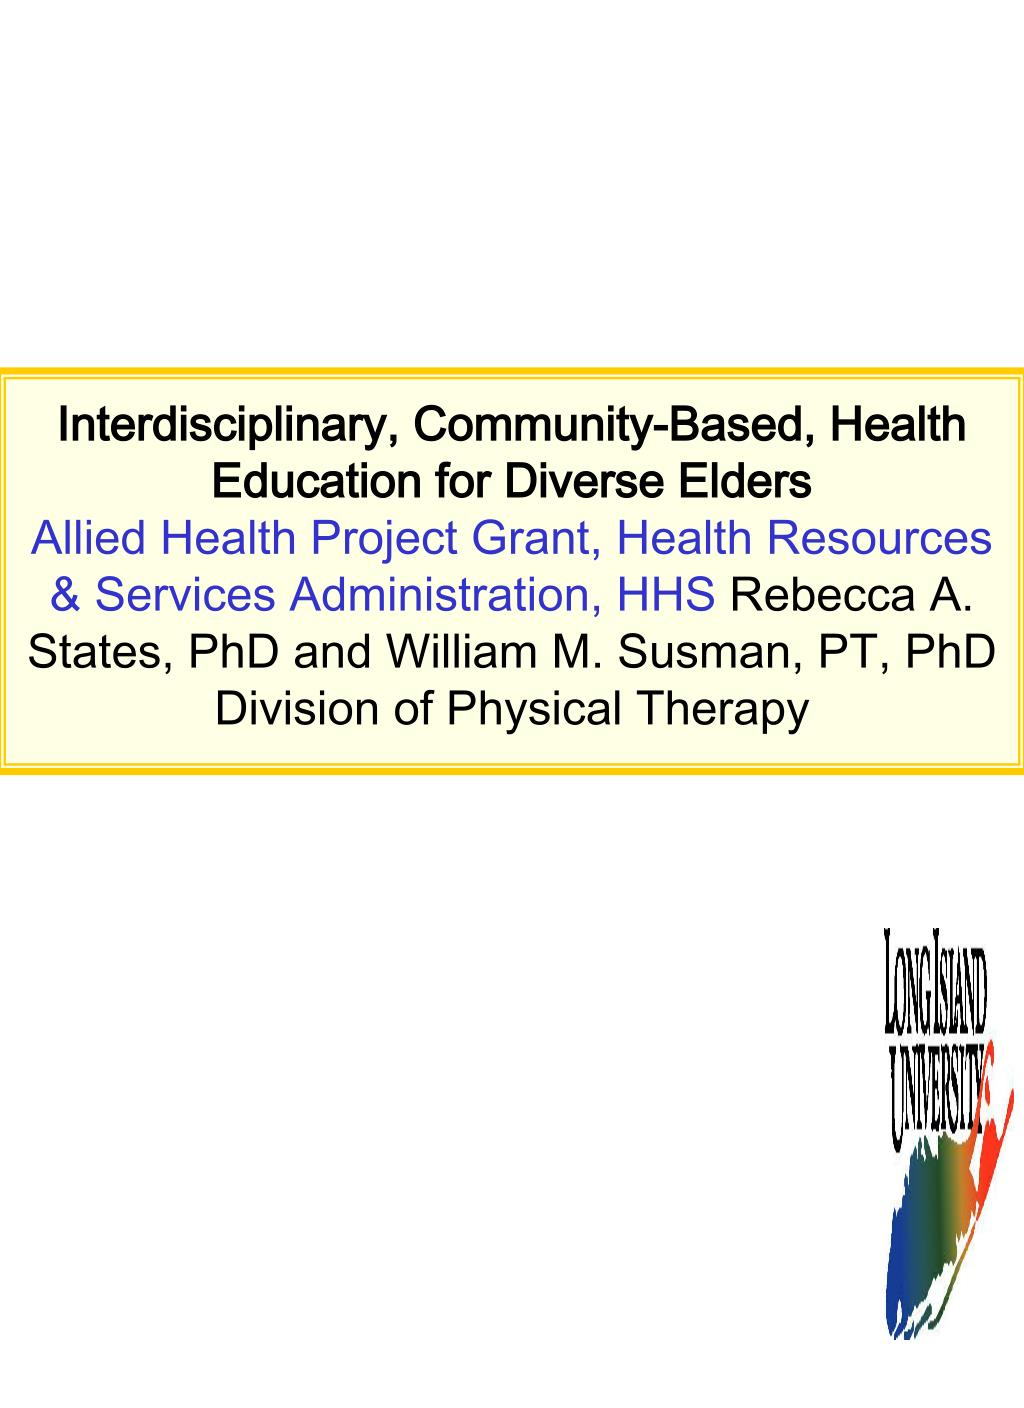 Interdisciplinary, Community-Based, Health Education for Diverse Elders